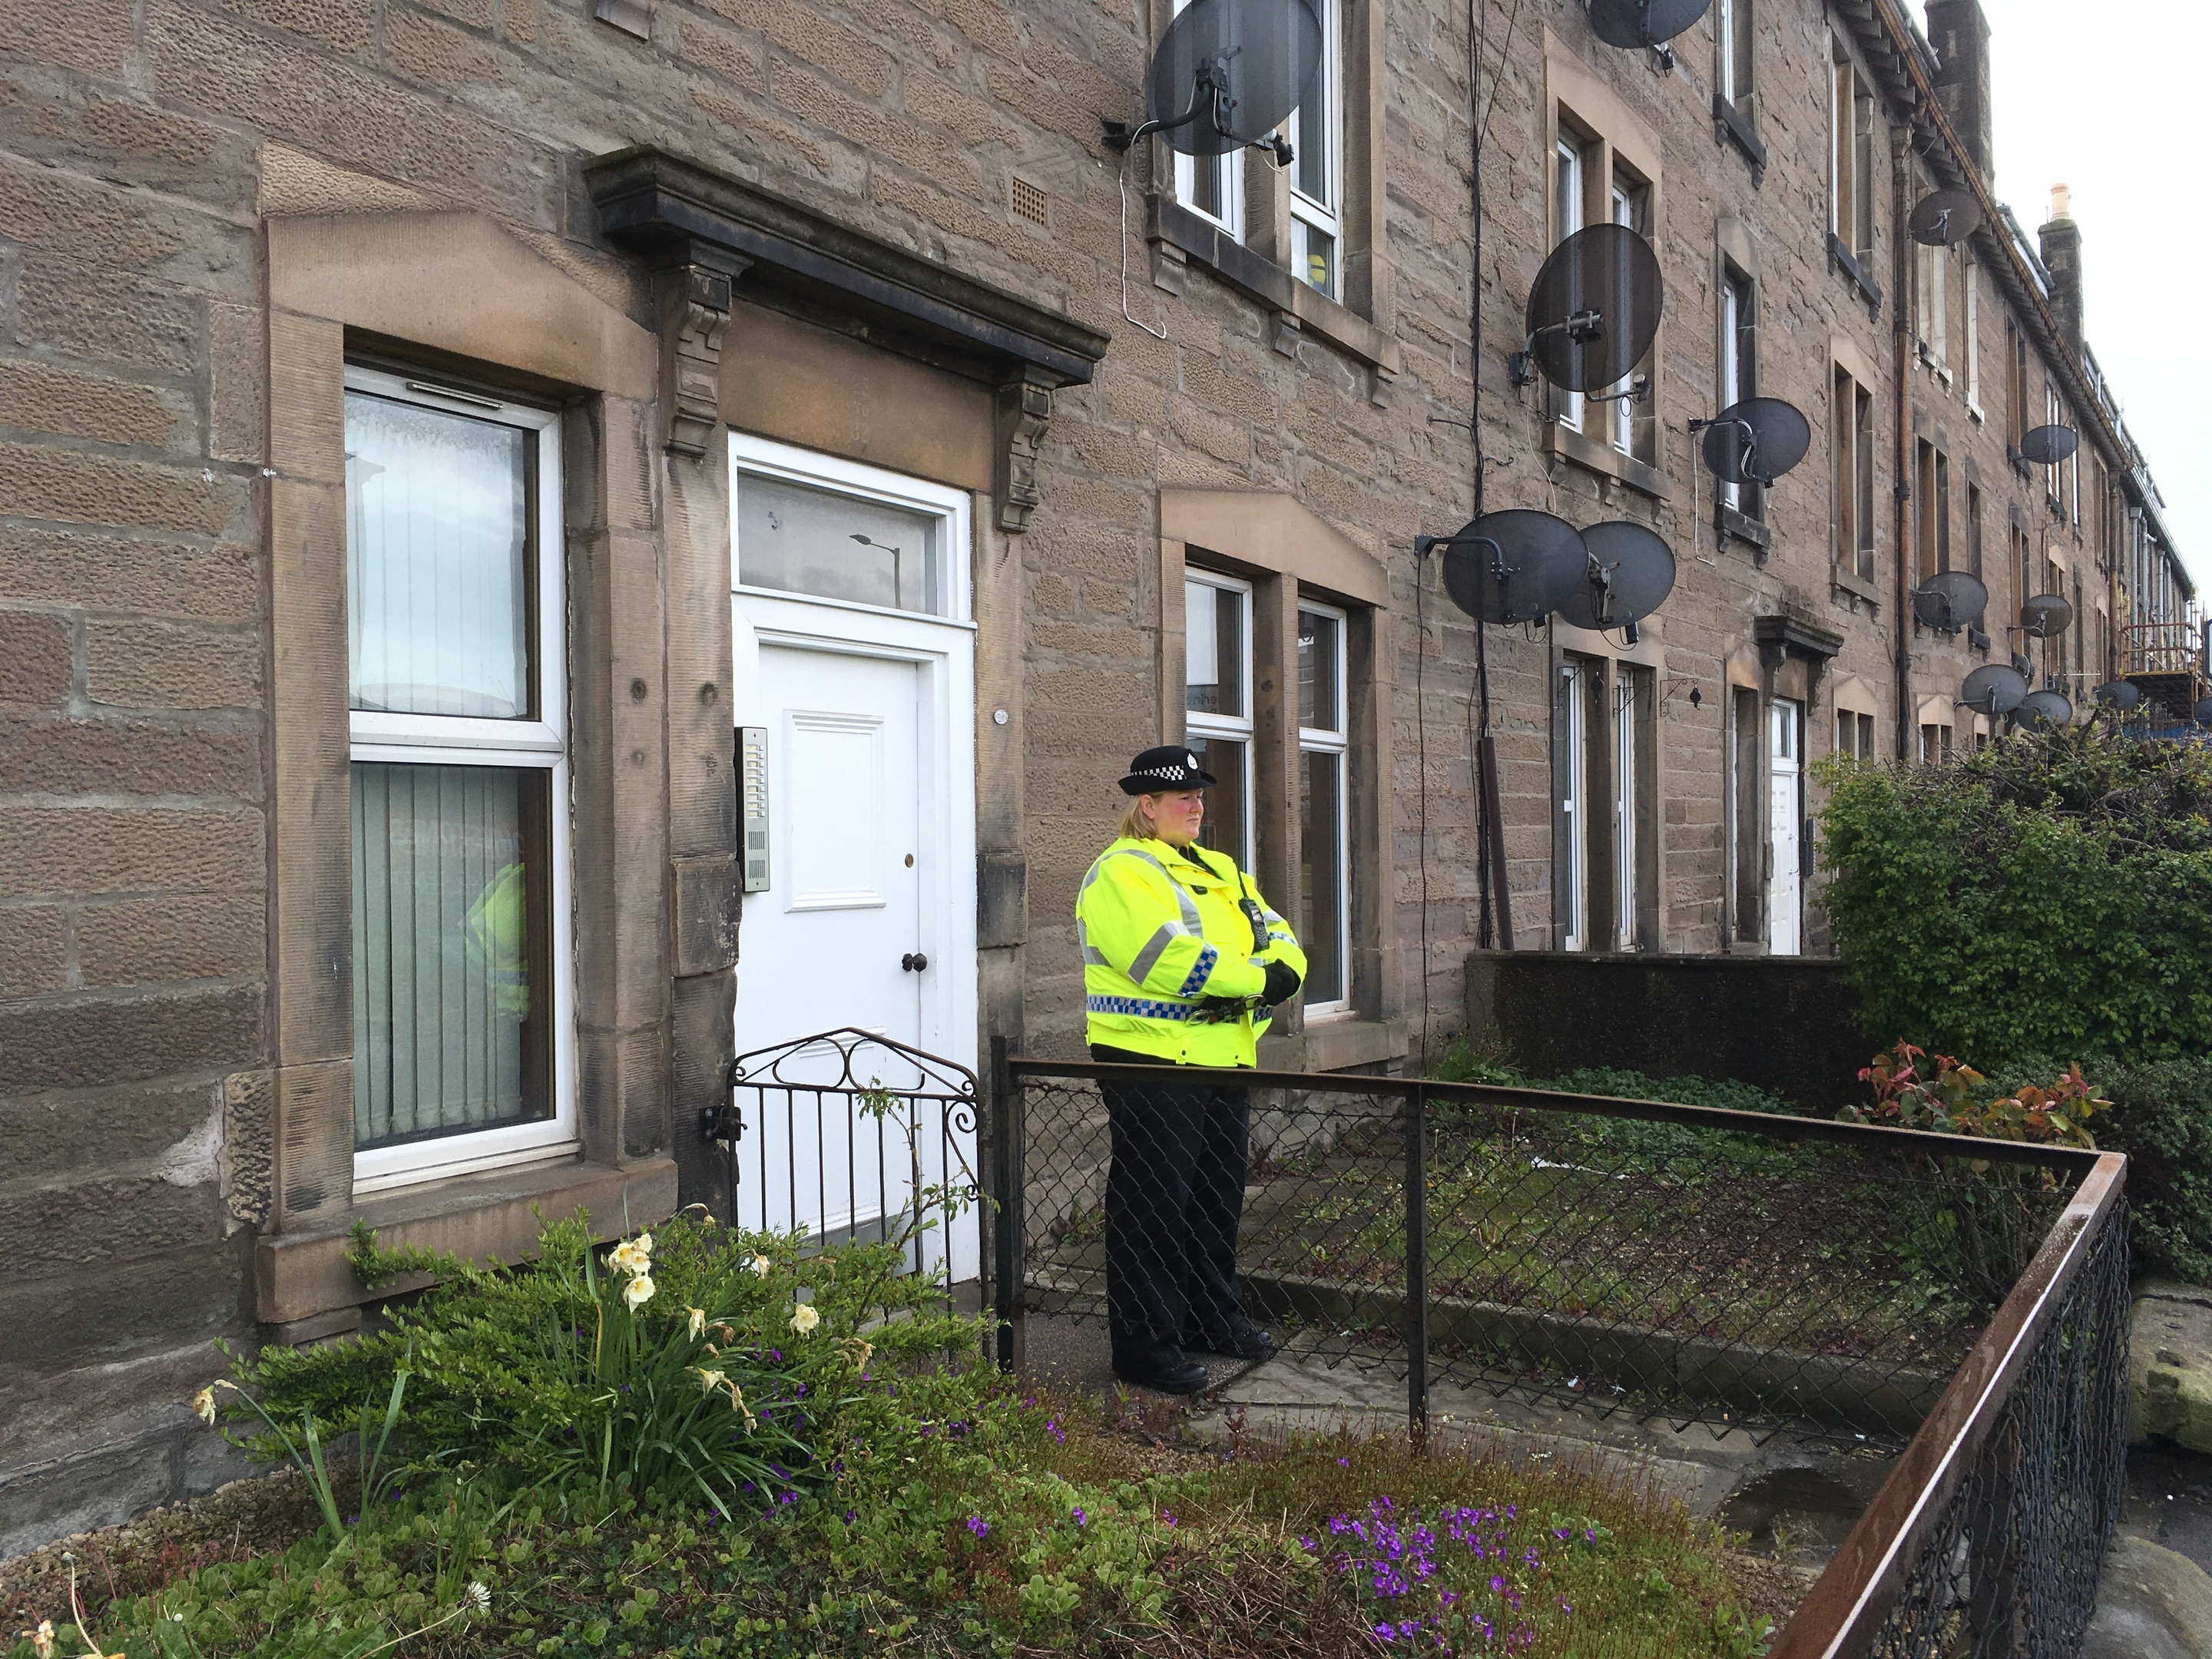 Police stand guard outside flat where woman was found dead.